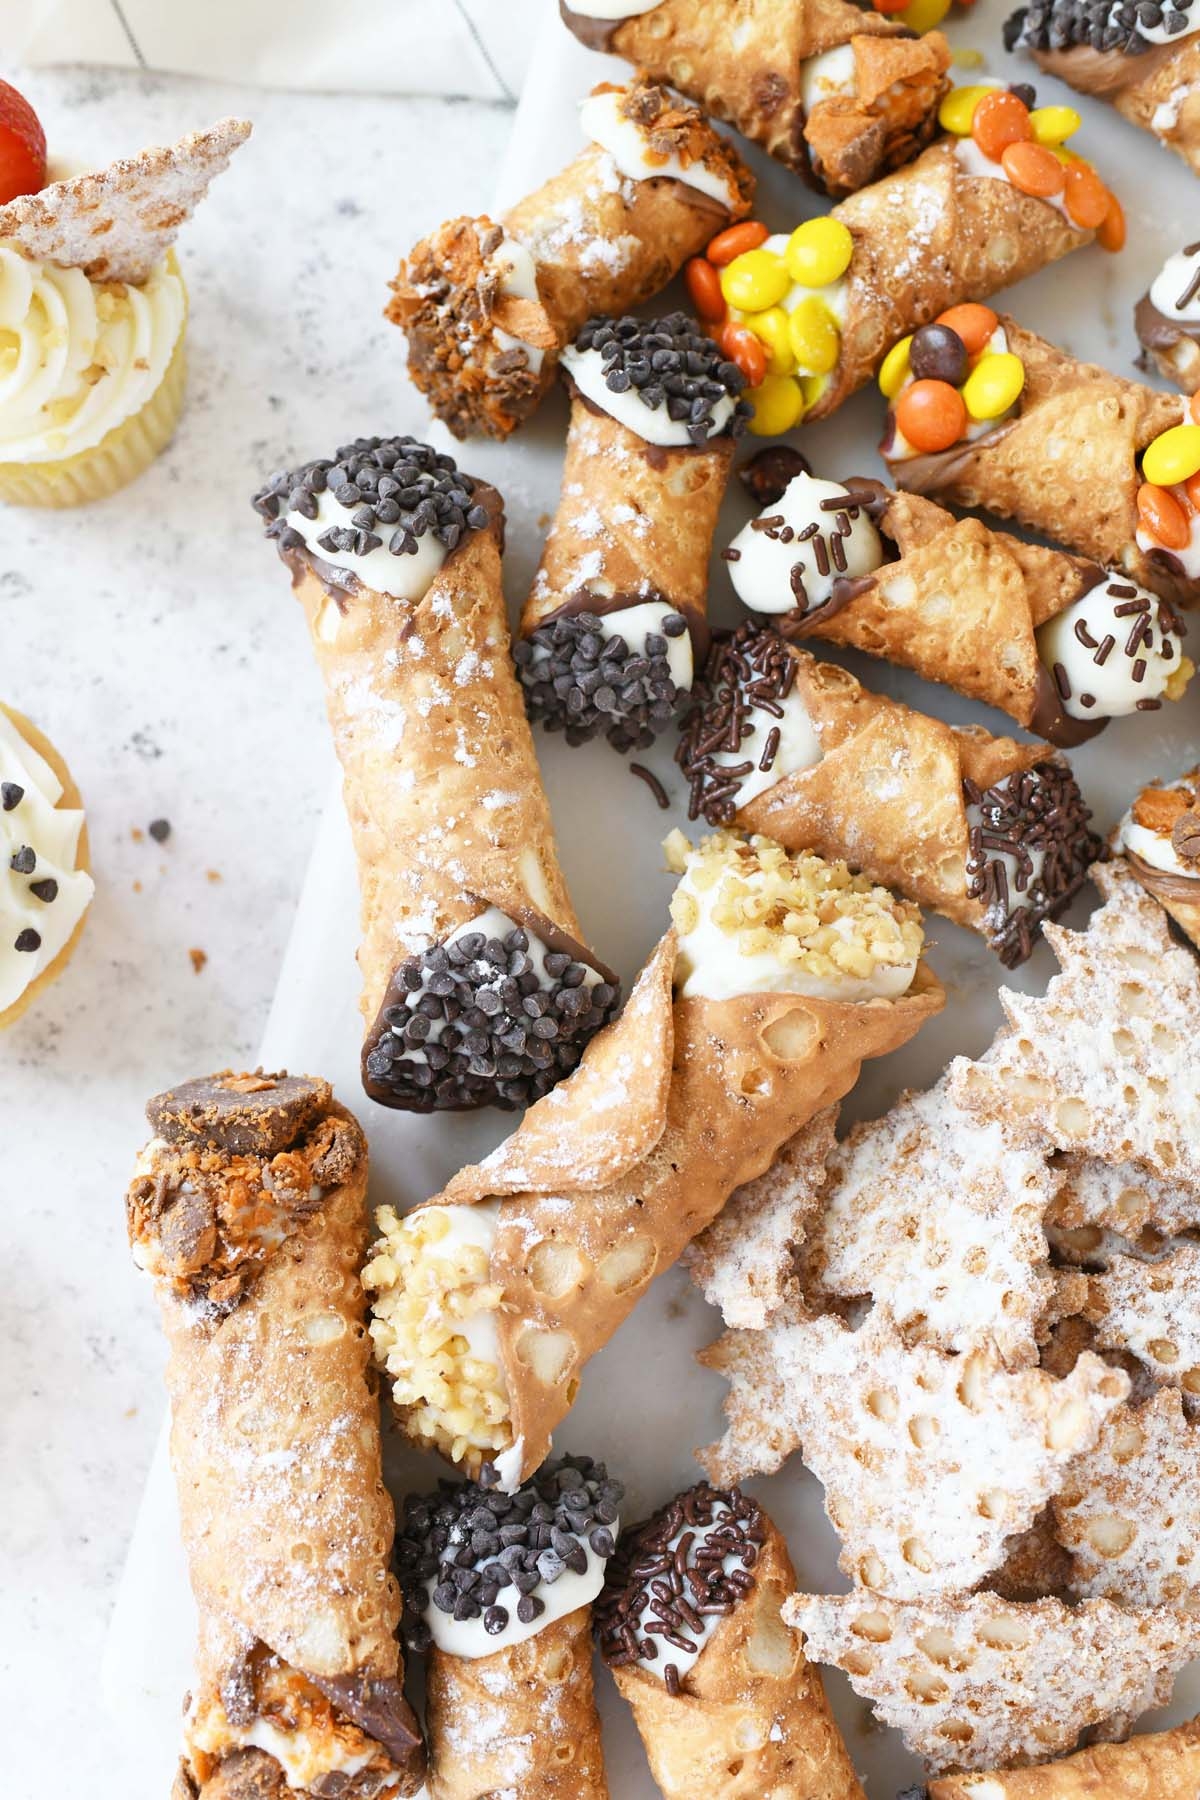 Golden Cannoli filled pastries on a marble serving platter.